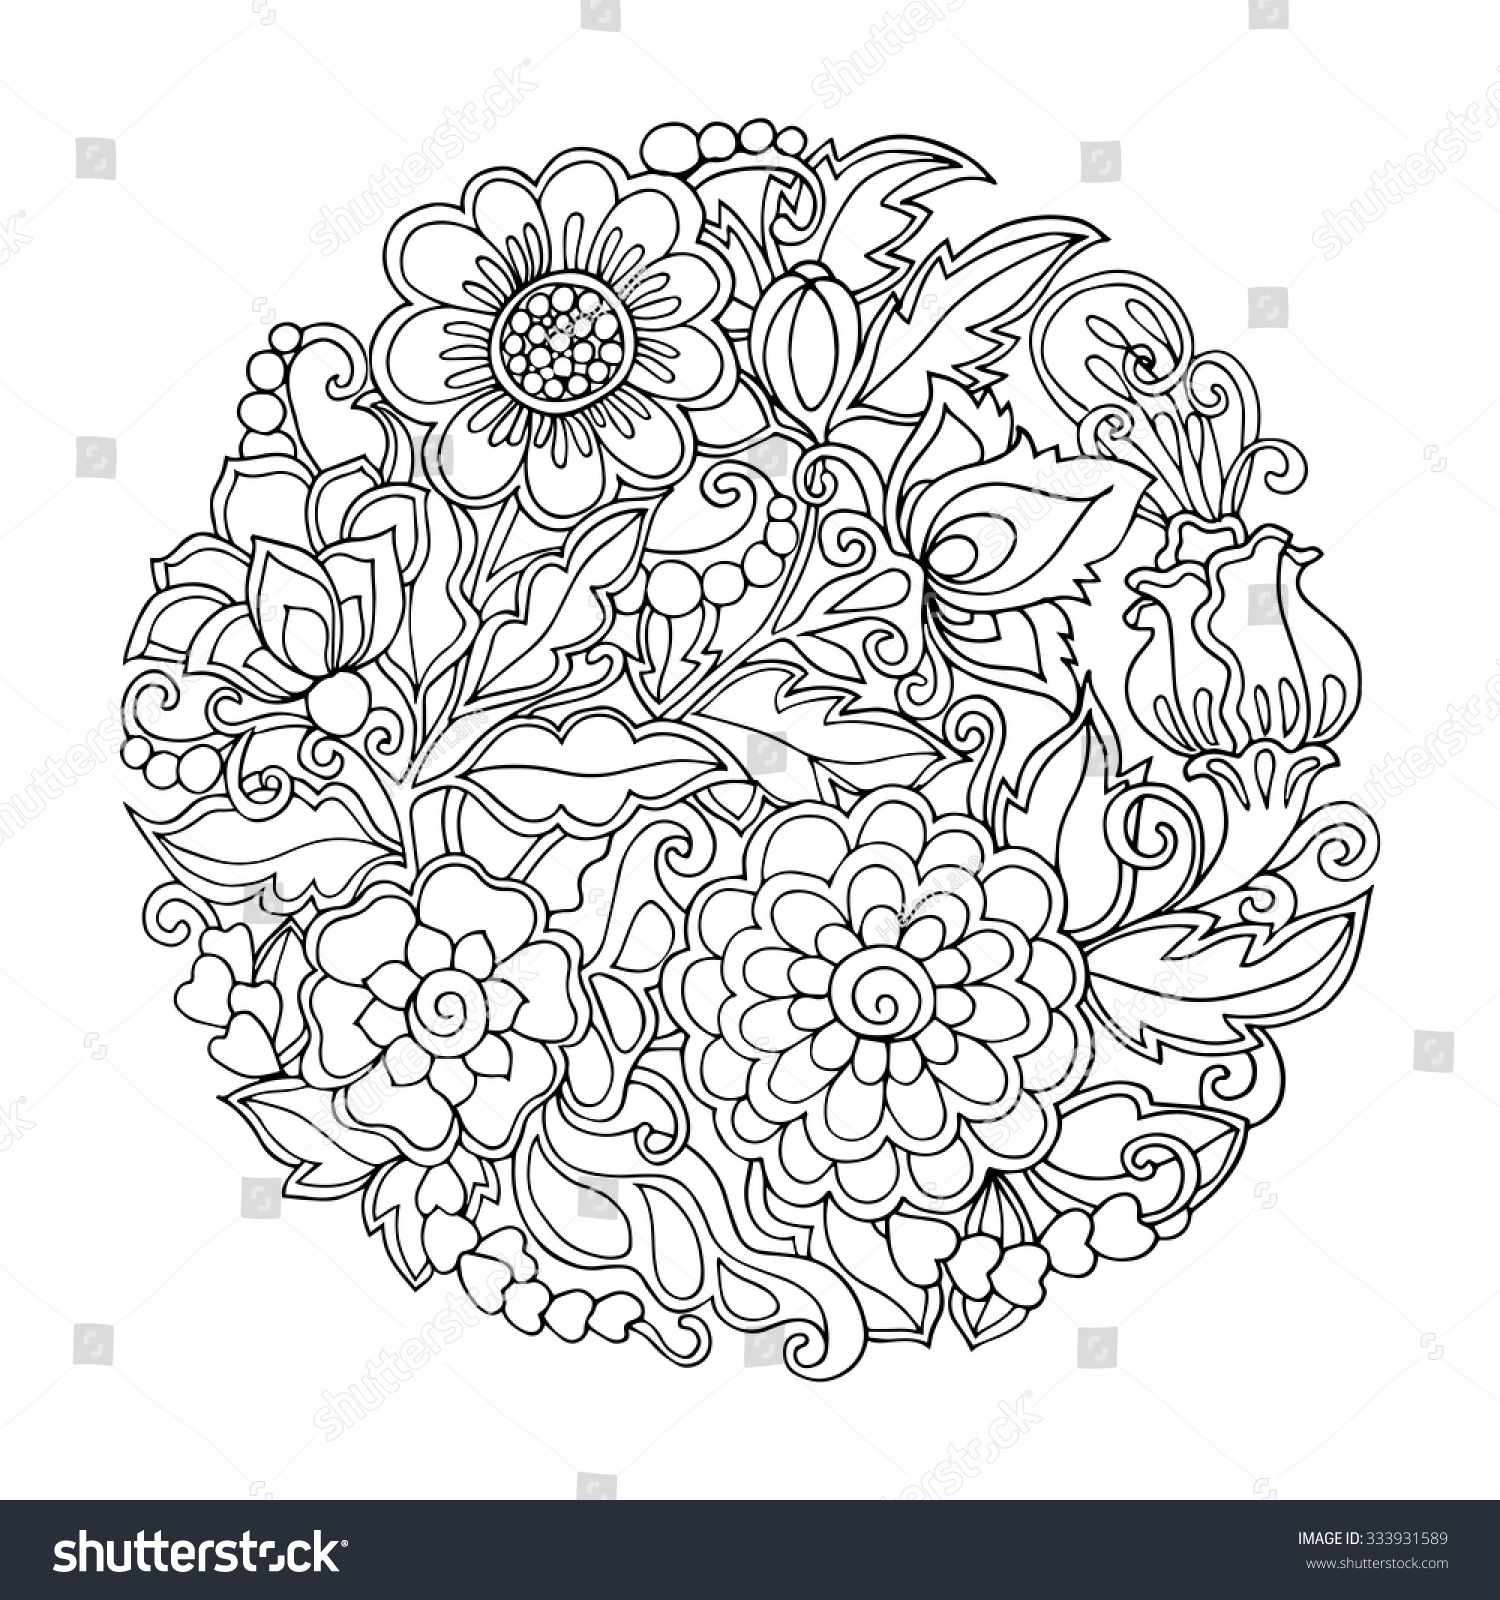 coloring book older children coloring stock vector 333931589